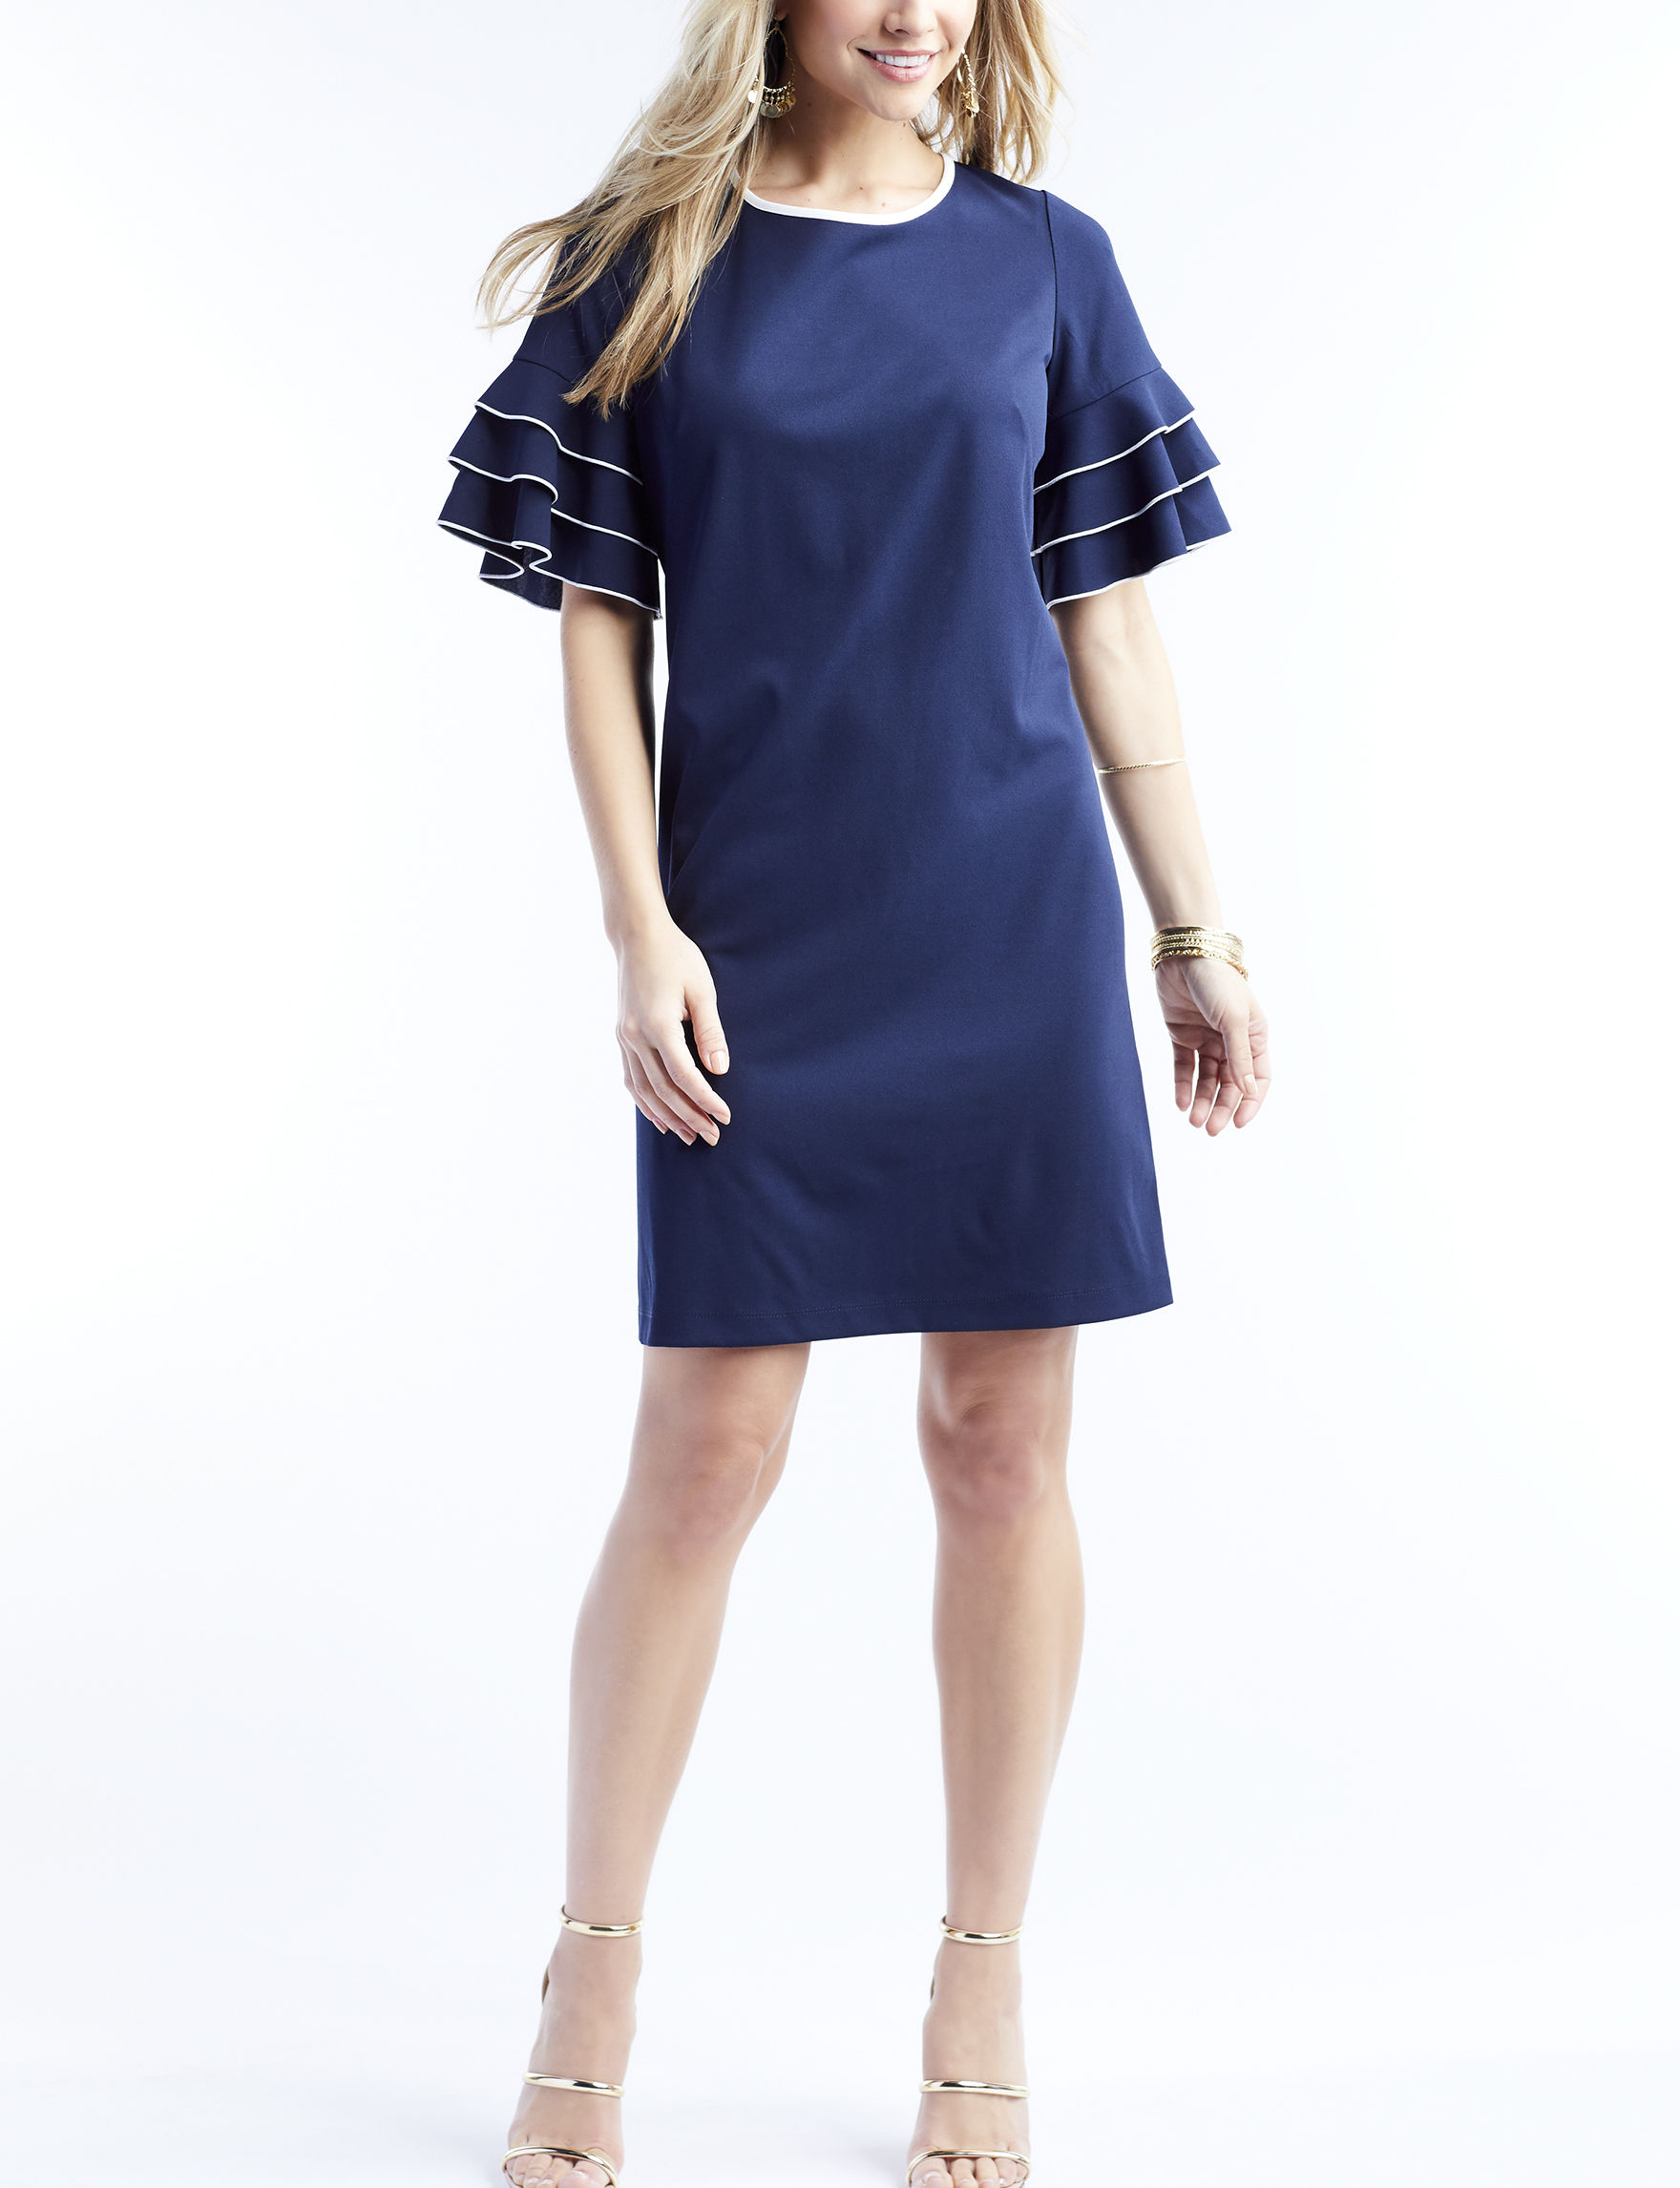 Perceptions Navy / Ivory Everyday & Casual Shift Dresses